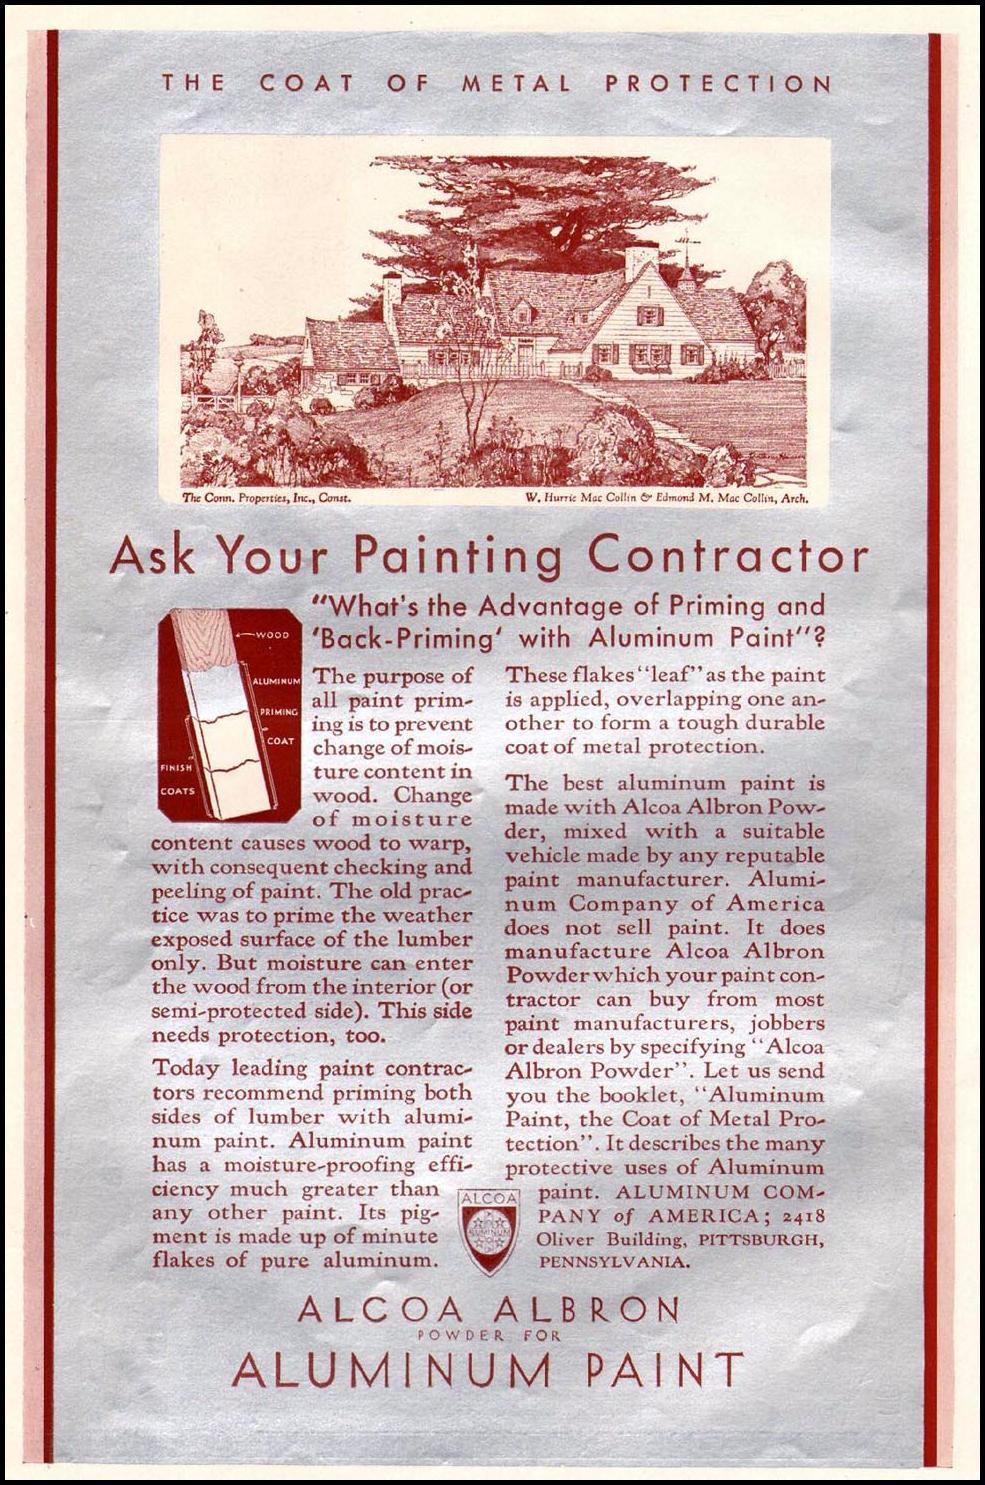 ALCOA ALBRON ALUMINUM PAINT BETTER HOMES AND GARDENS 10/01/1930 p. 66